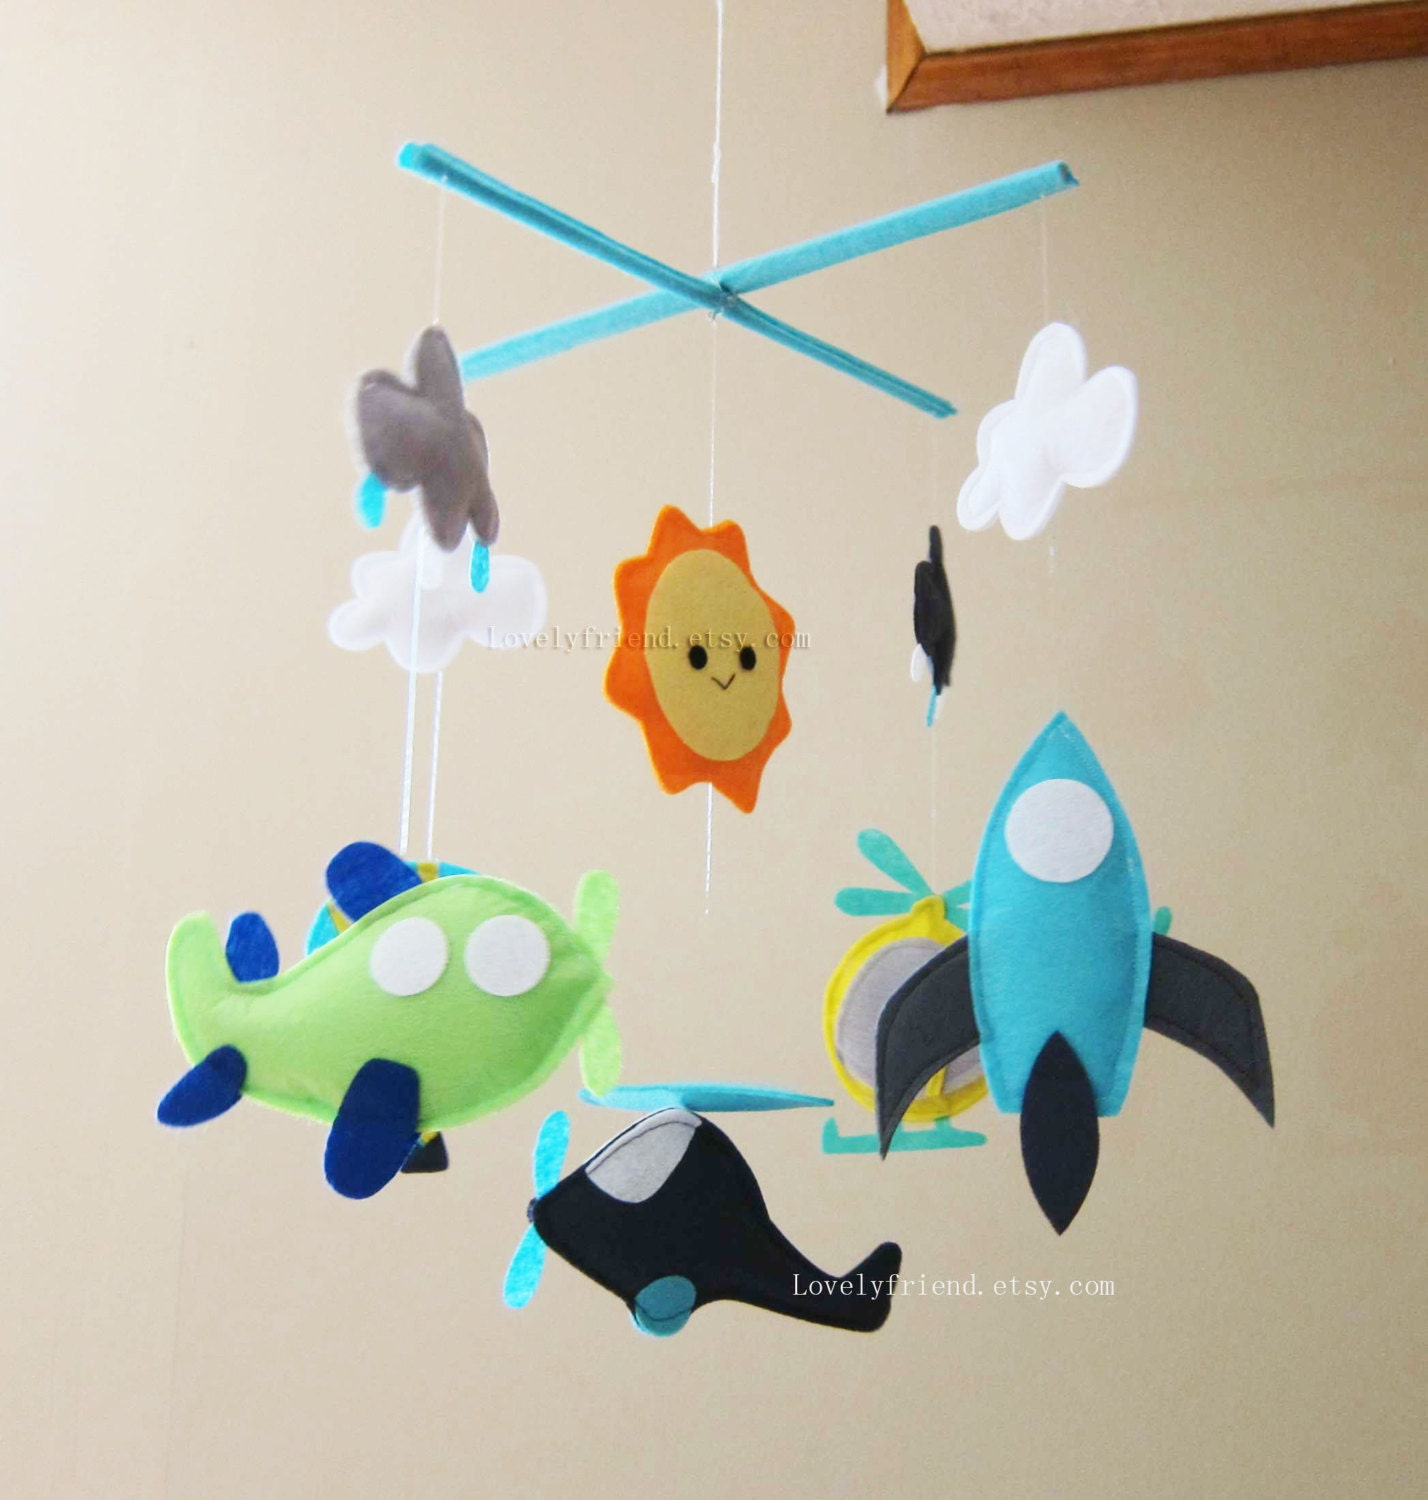 Baby Mobile Airplane Baby Boy Mobile Hot Air Balloon Baby